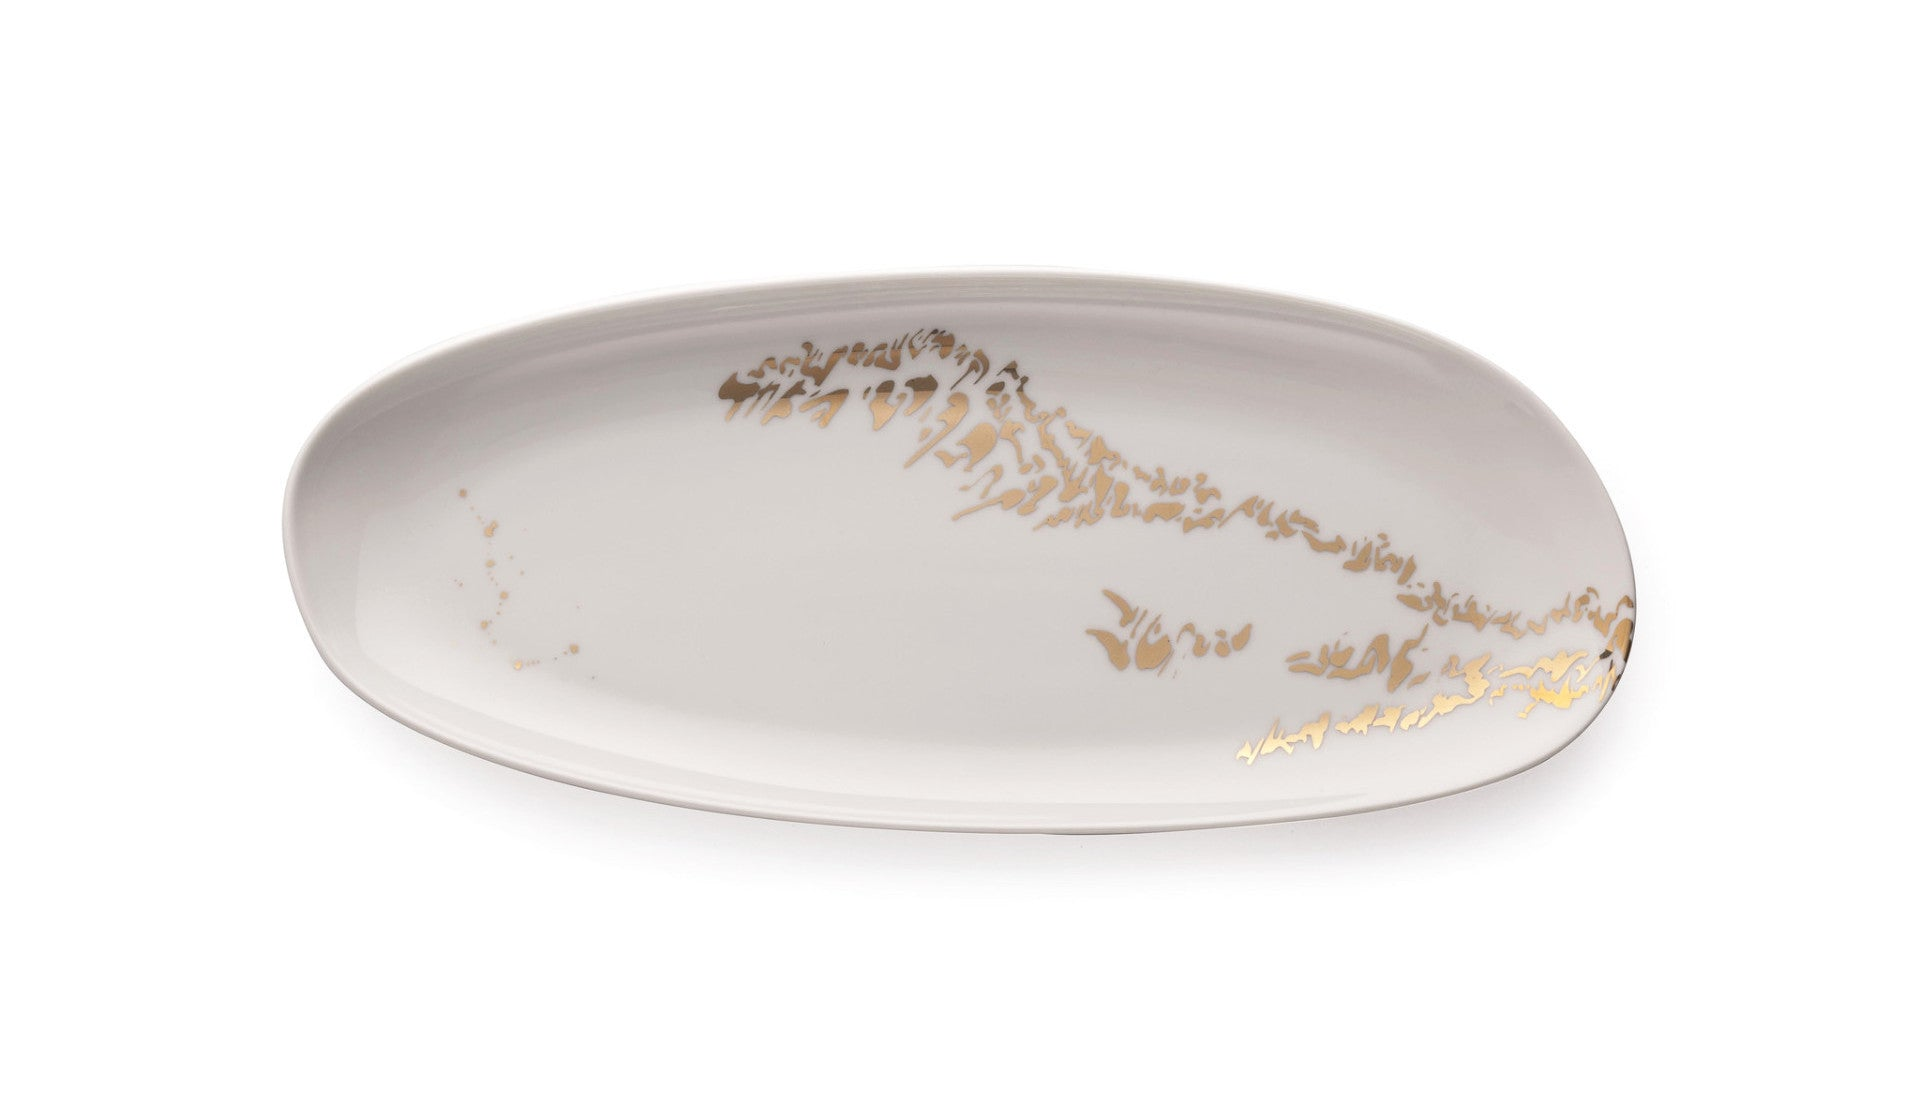 Oval serving dish - Enigmatic script 1